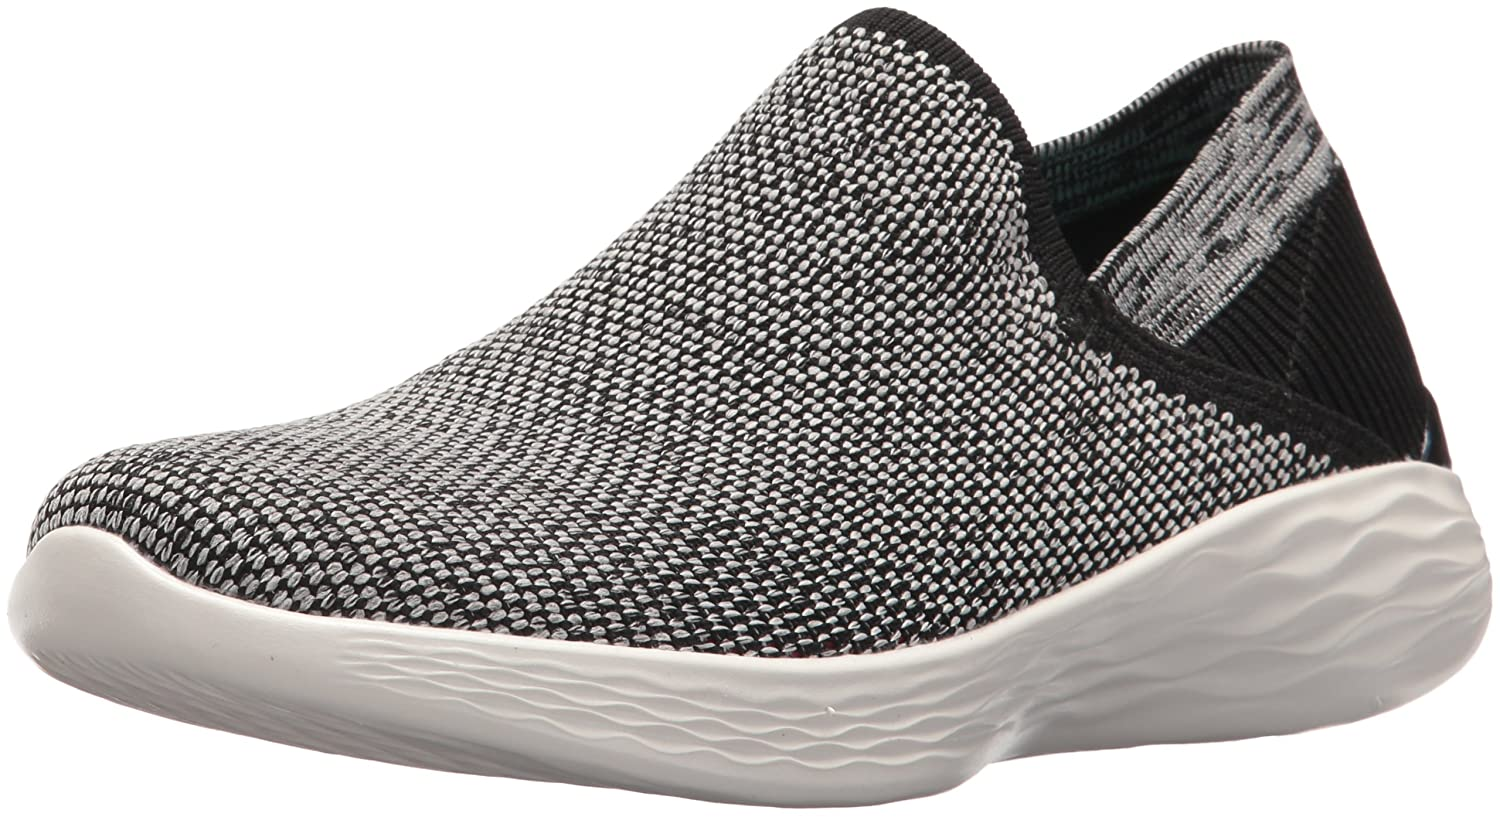 Skechers Noir/Blanc You-Rise, Baskets Enfiler Enfiler Femme Baskets Noir/Blanc 204bda0 - latesttechnology.space